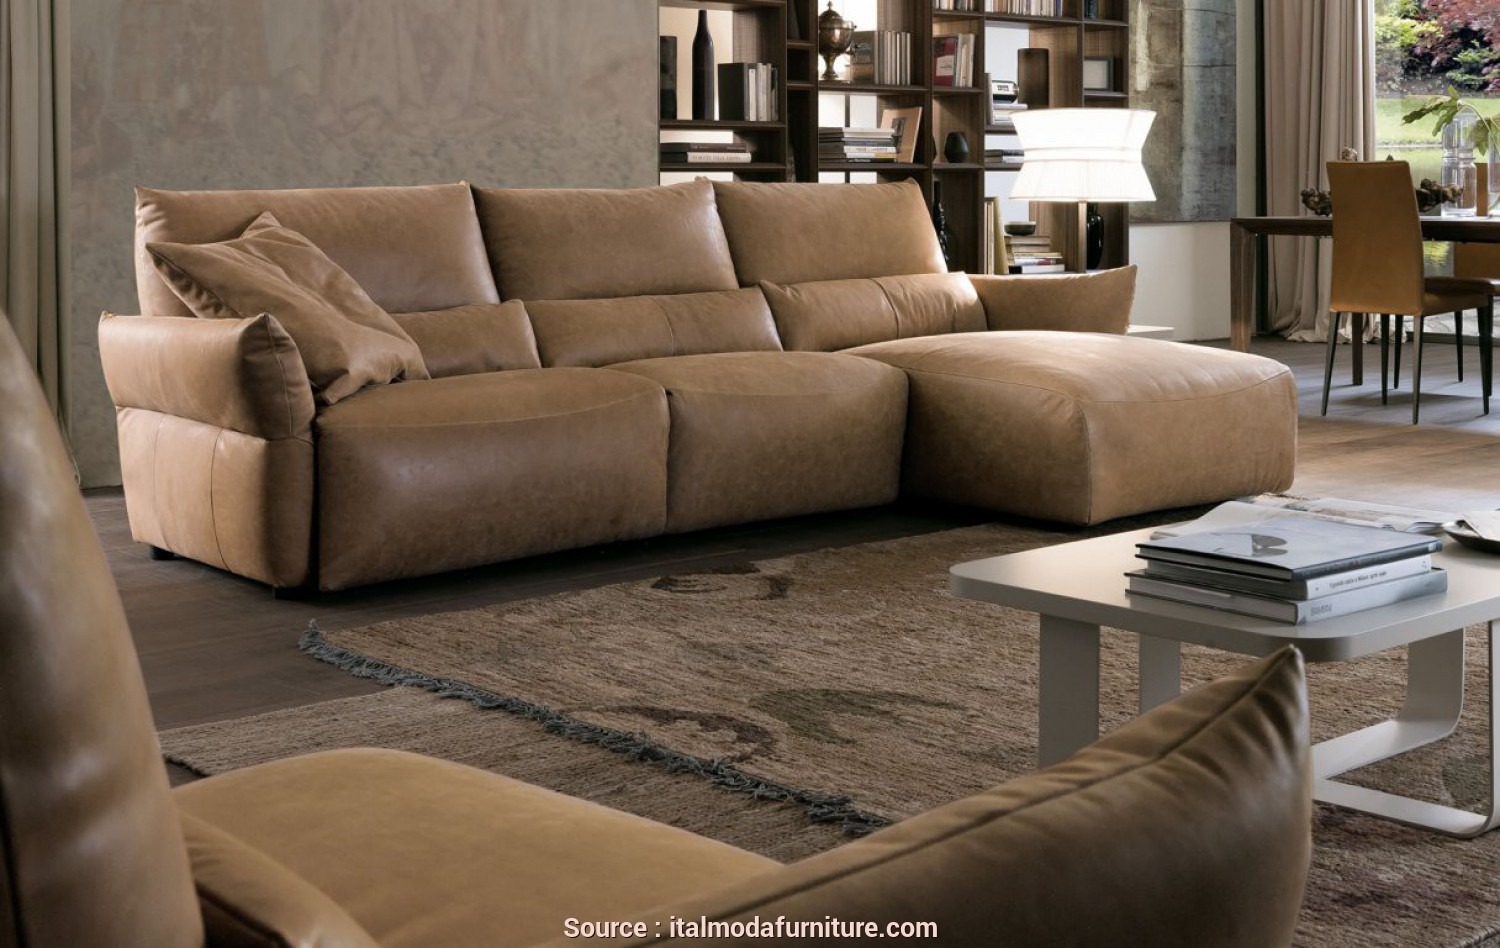 Divano Olga Chateau D'Ax, Migliore Sectionals, Living Room, Italmoda Furniture Store